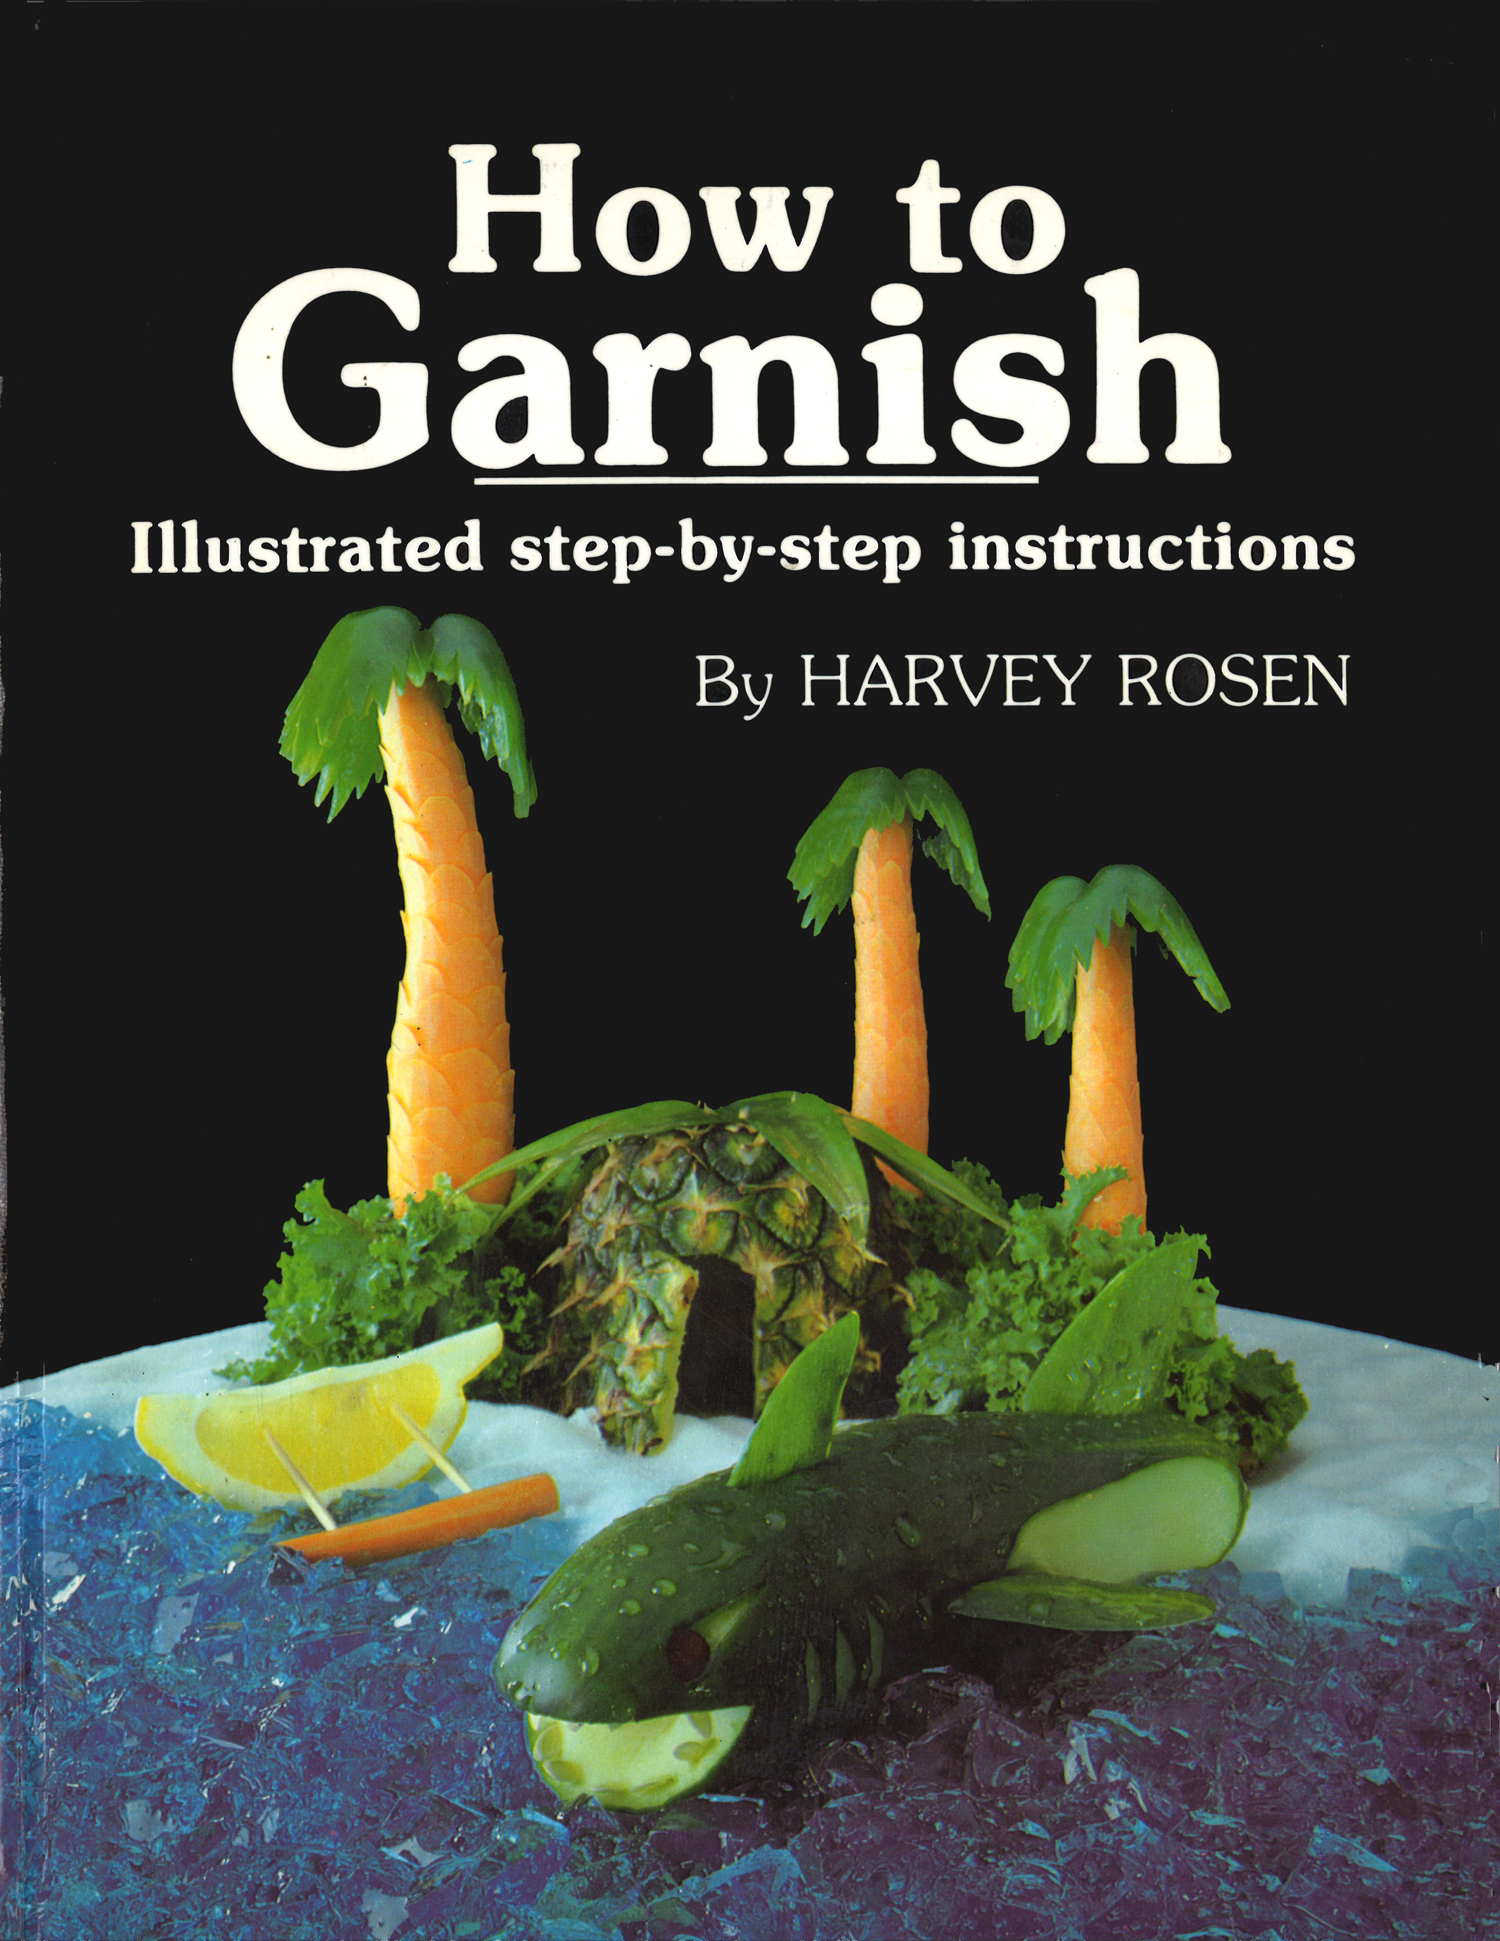 How to Garnish